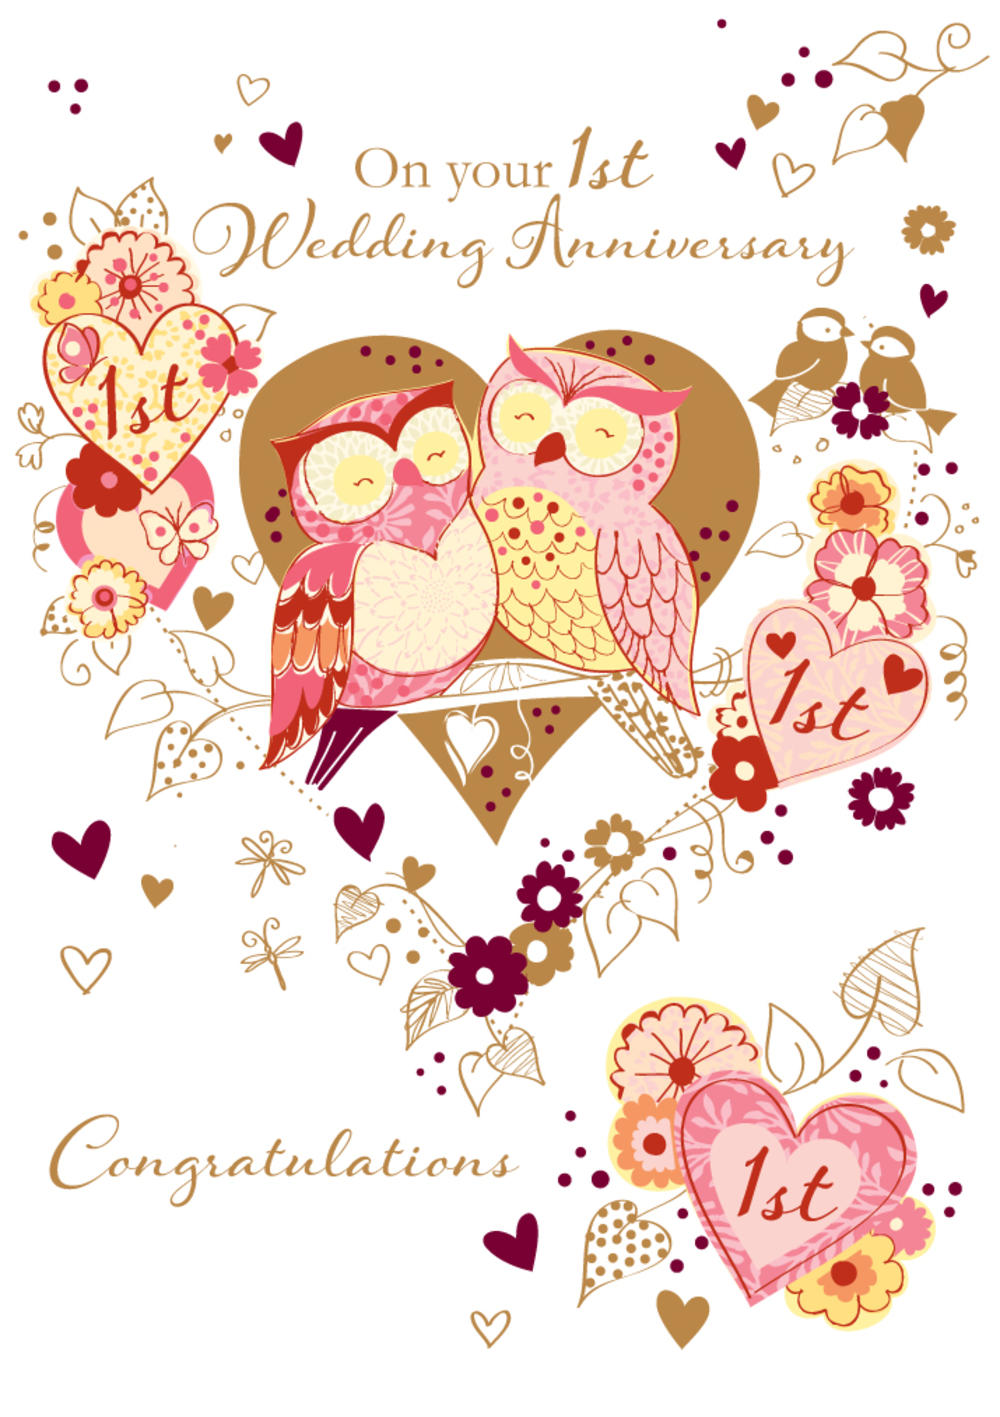 On your 1st wedding anniversary greeting card cards love kates on your 1st wedding anniversary greeting card m4hsunfo